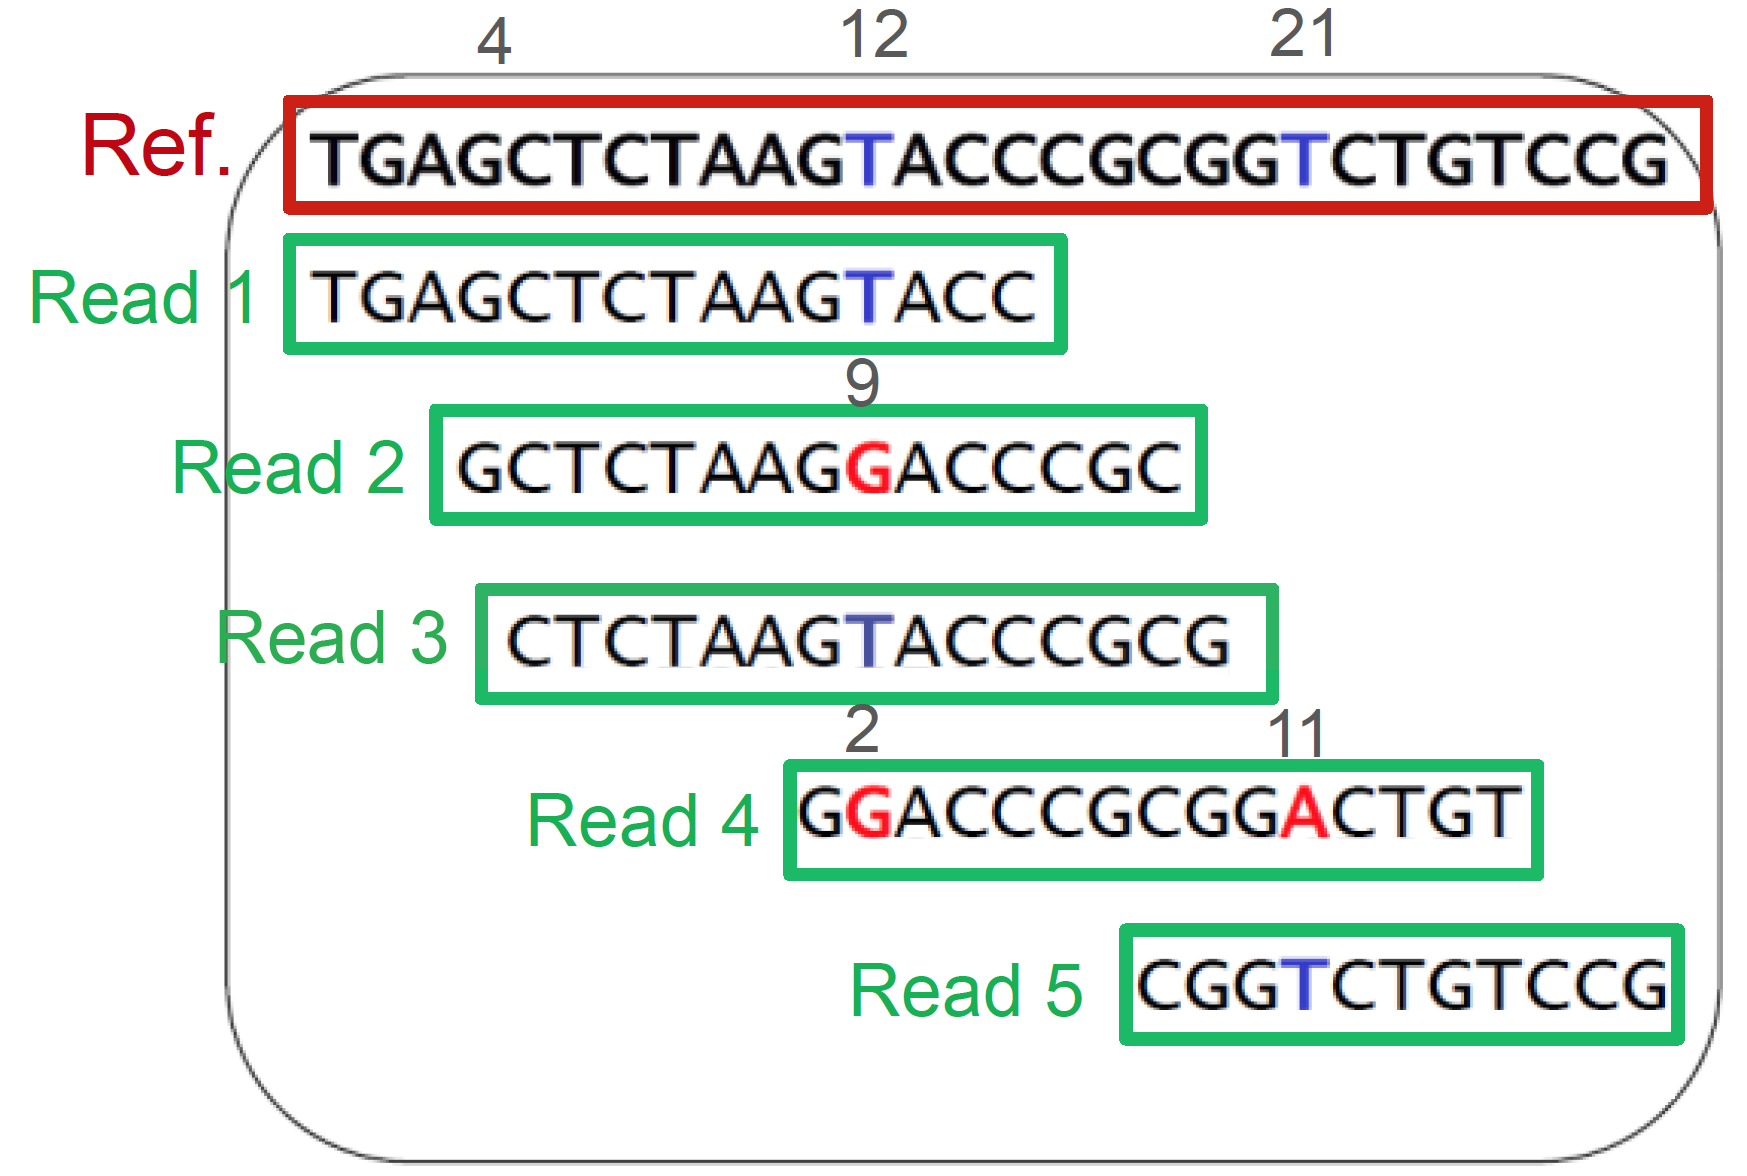 The key idea is to provide a list of references for metagenomic reads, which inherently lack references. Subsequently, we encode only the small difference between the reference and our reads to achieve high compression rate.